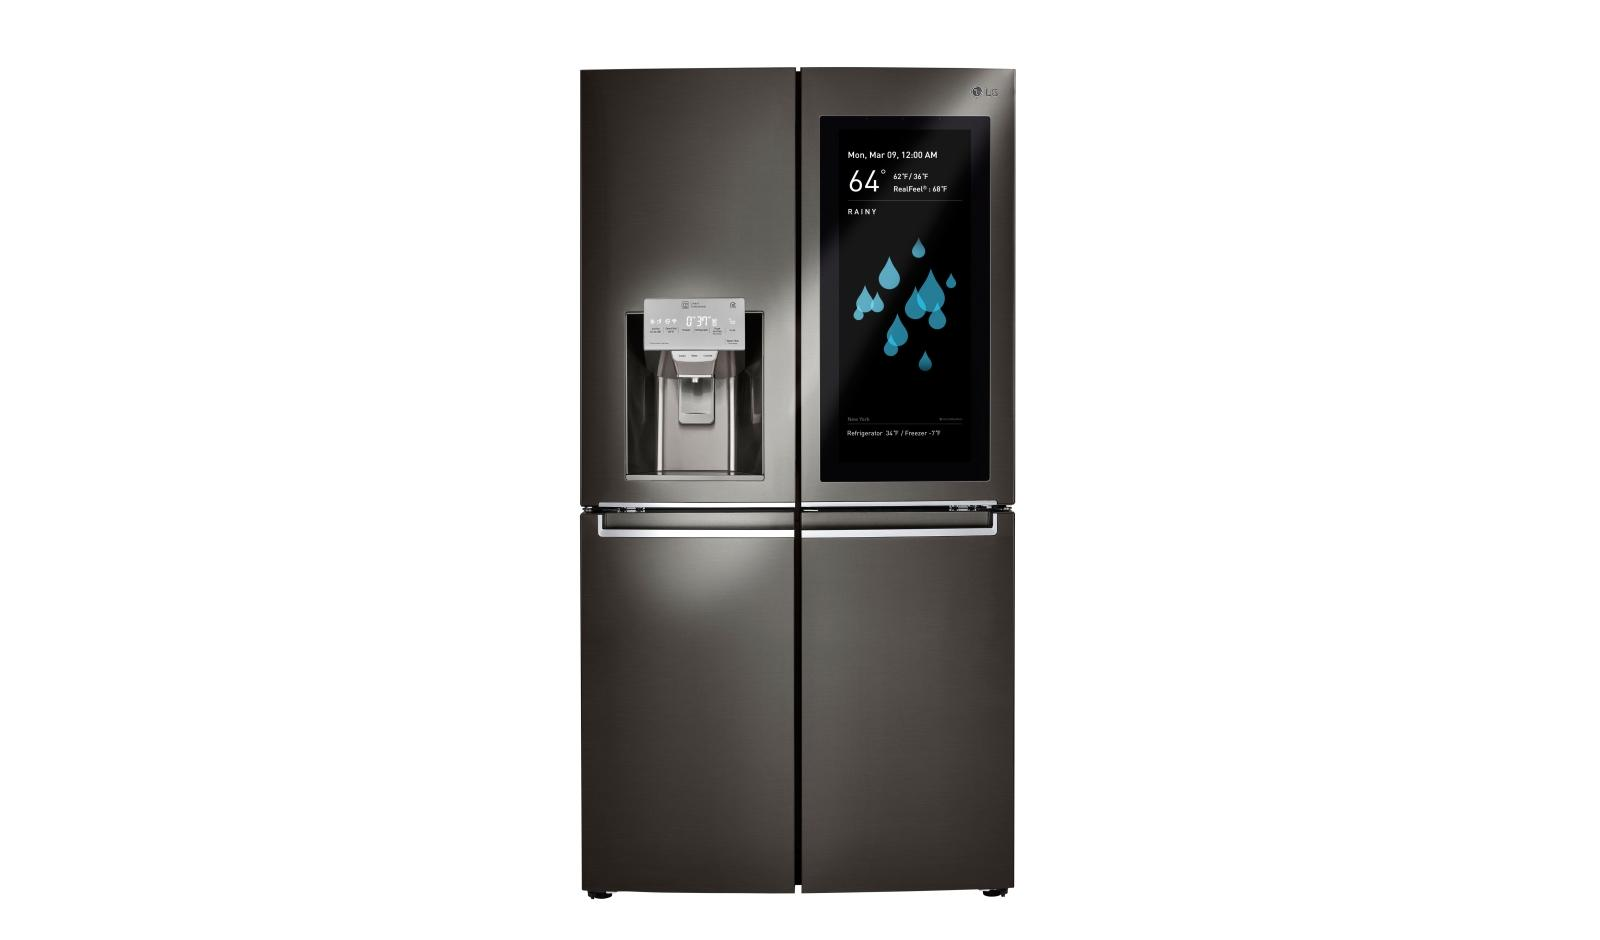 LG ThinQ Smart Refrigerator